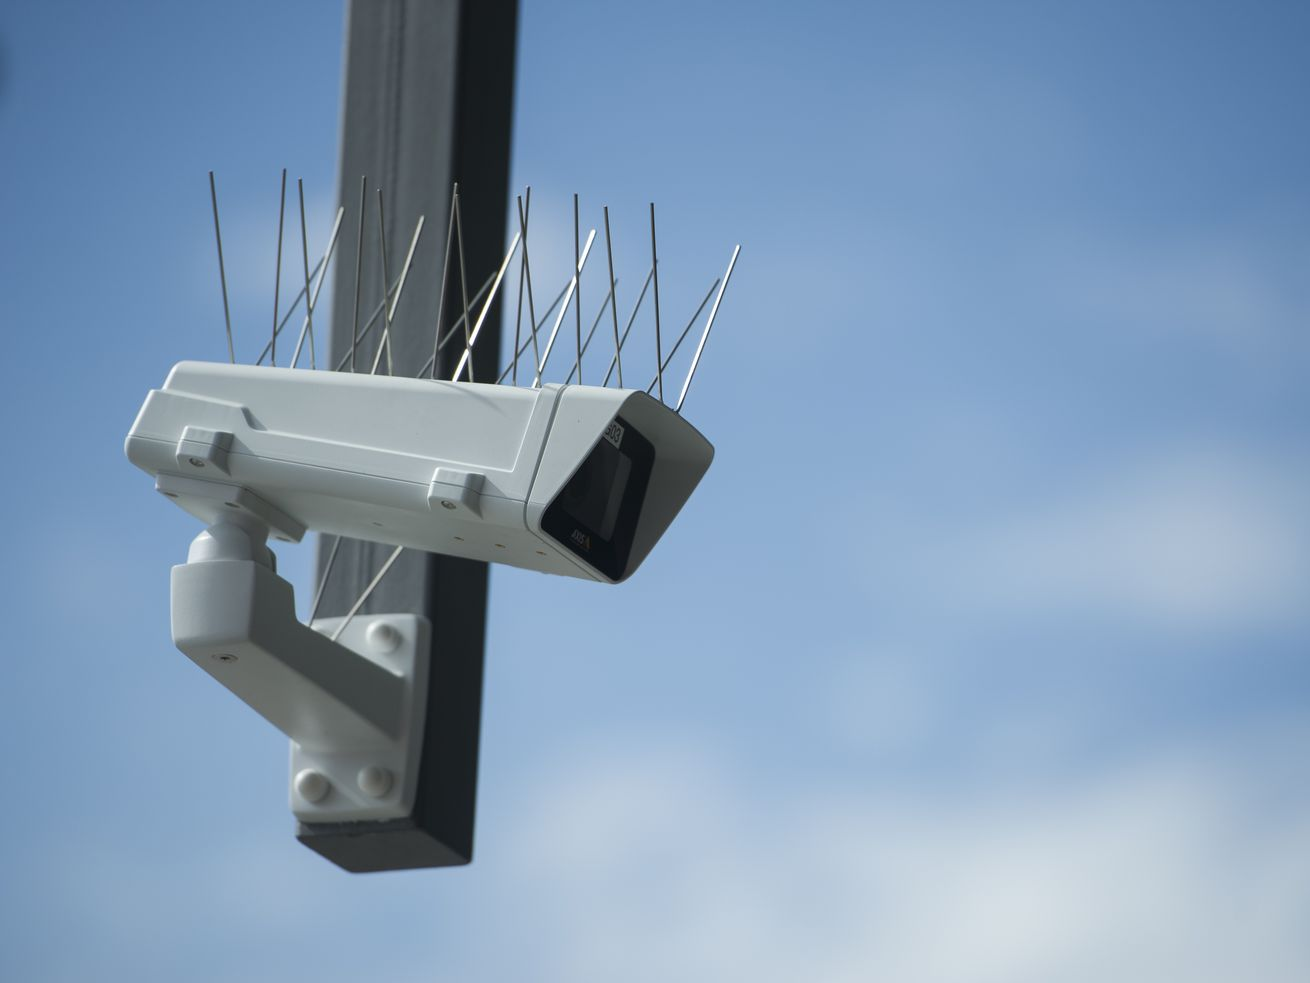 Big Brother may be watching you, but not in San Francisco.